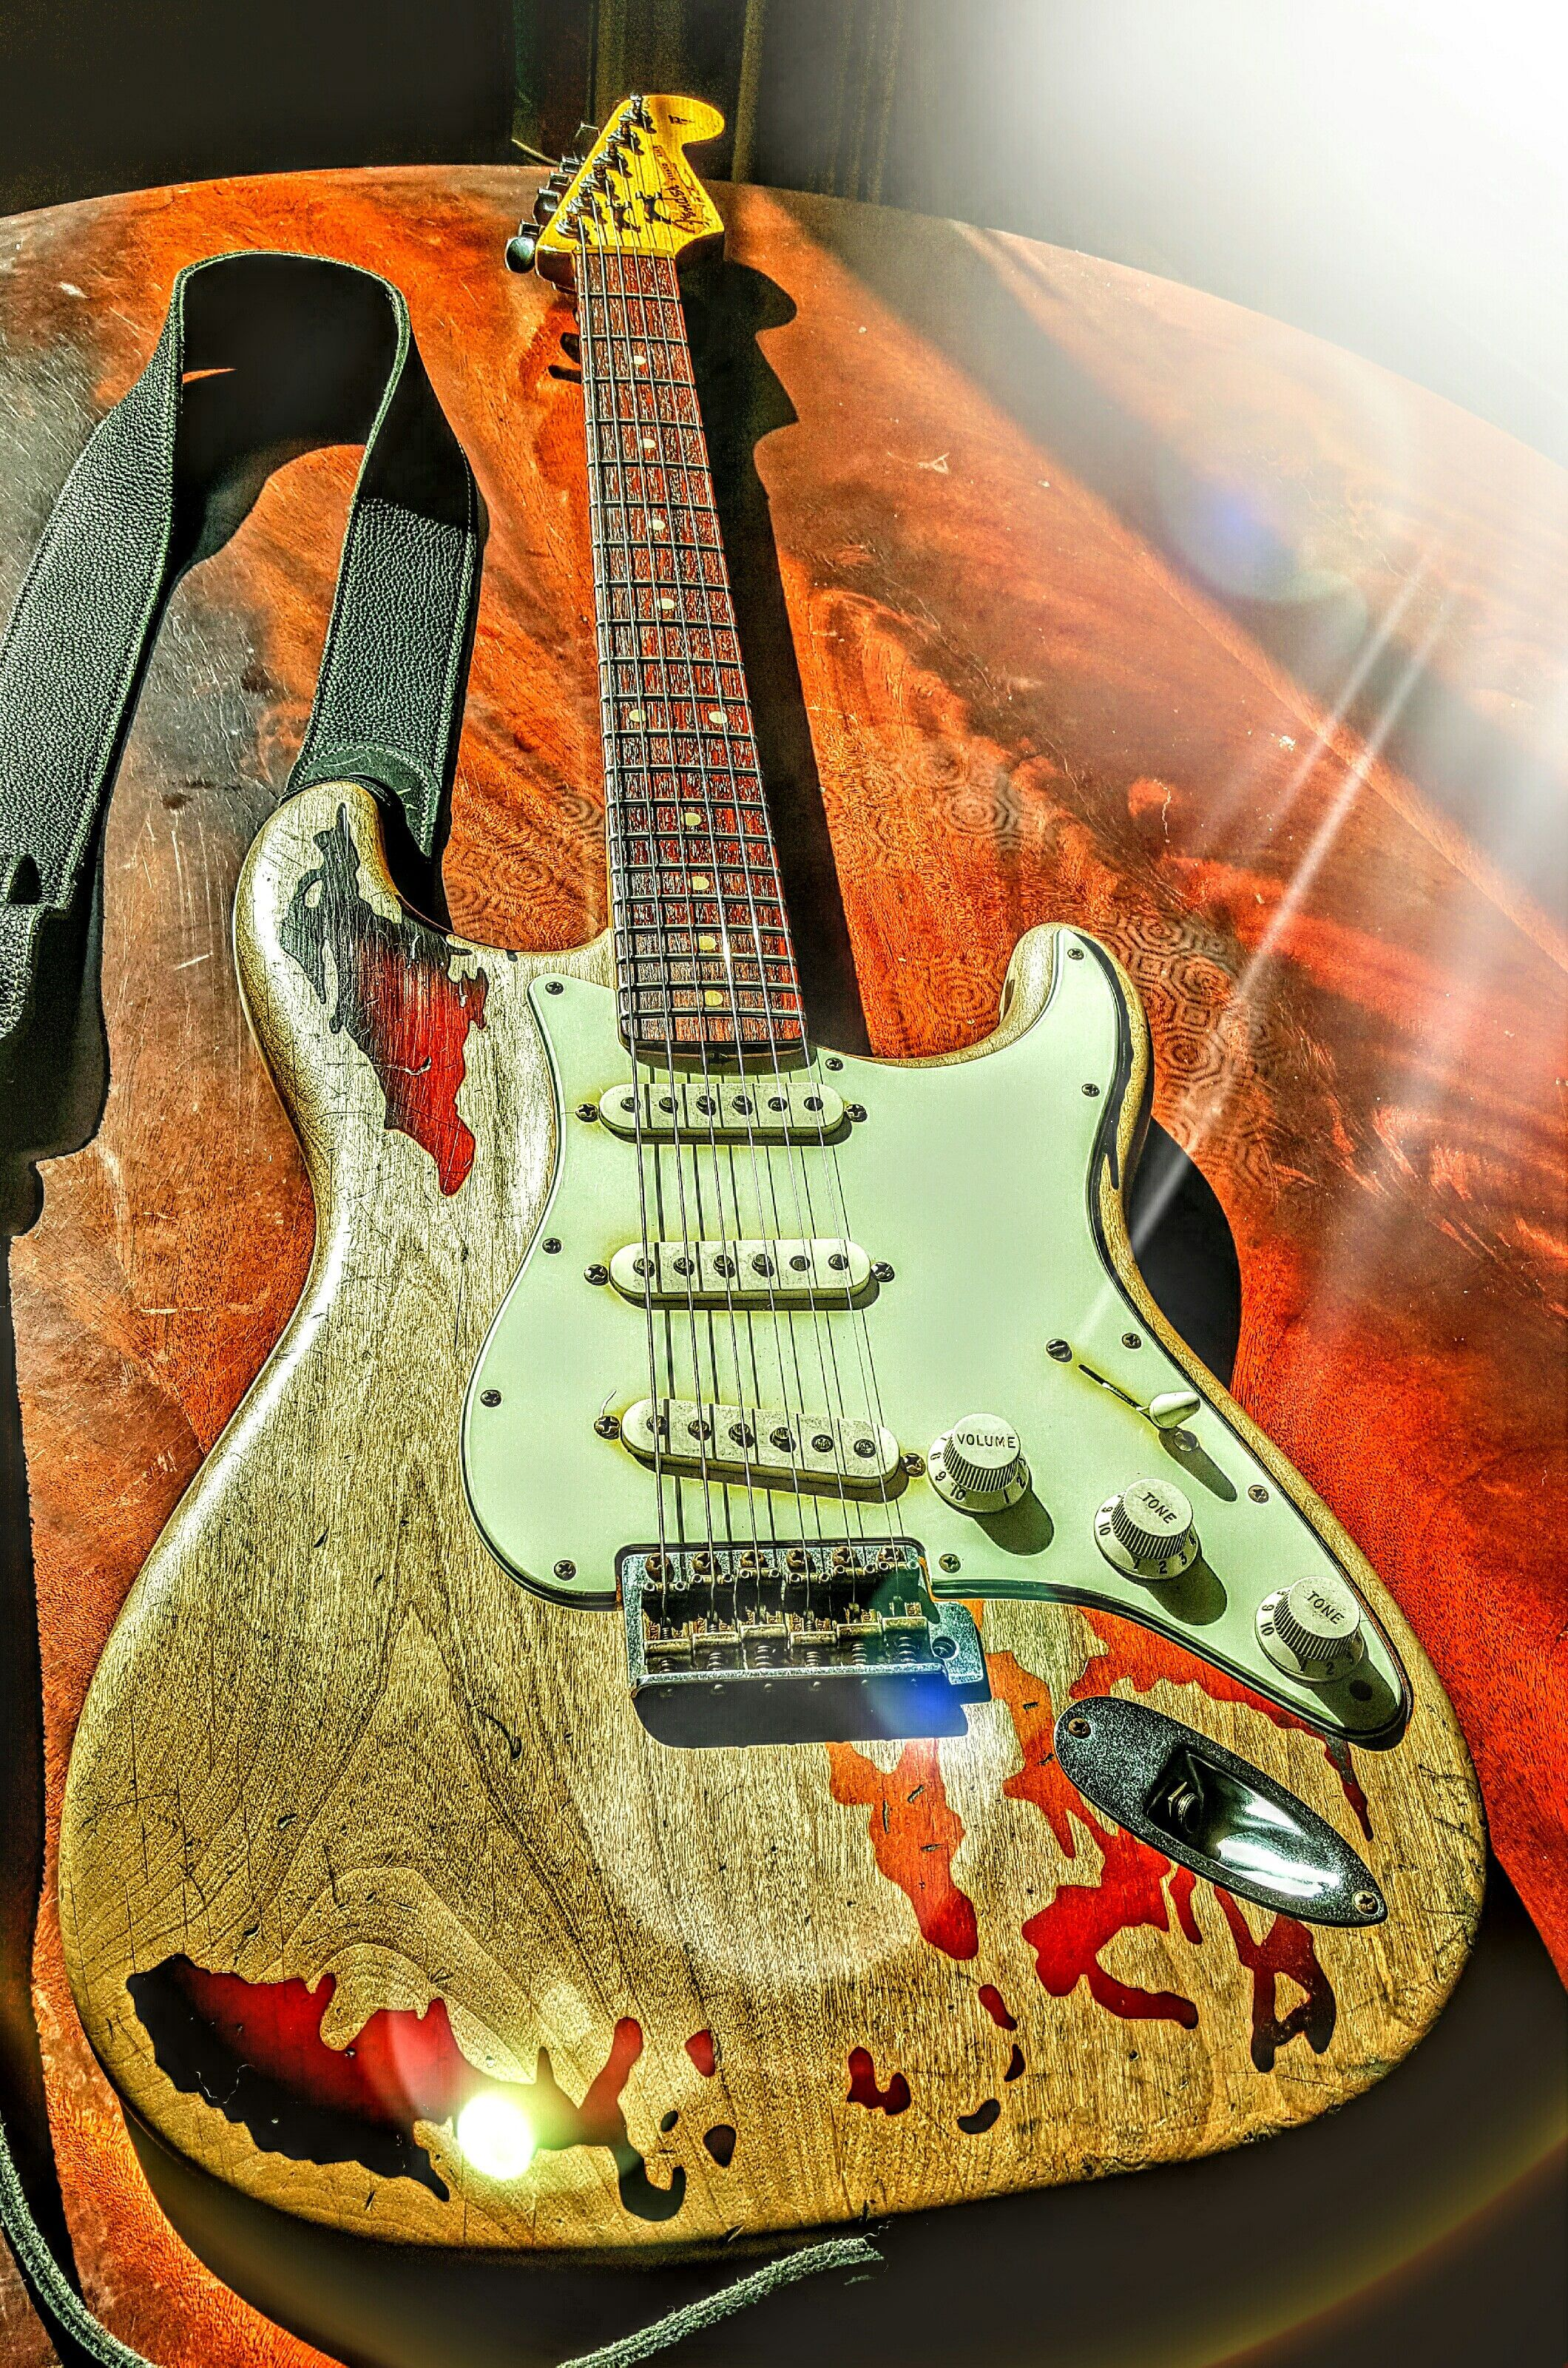 My Rory Gallagher Signature Relic 61 Stratocaster made by The Fender Custom Shop USA